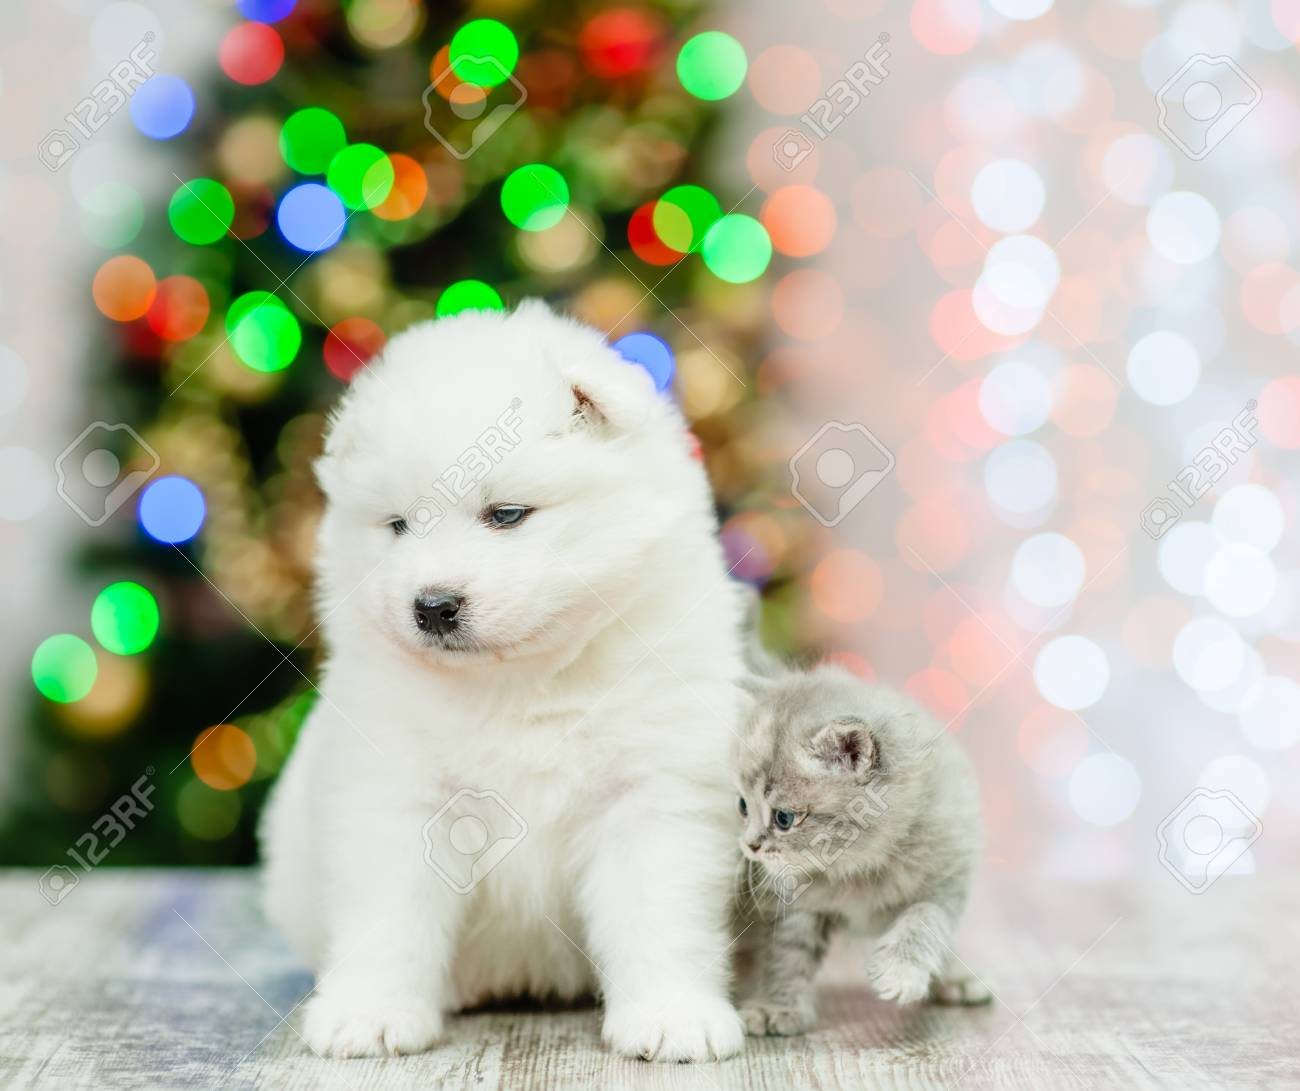 Baby Samoyed Puppy And Tiny Kitten Sitting Together With Christmas Stock Photo Picture And Royalty Free Image Image 115536148